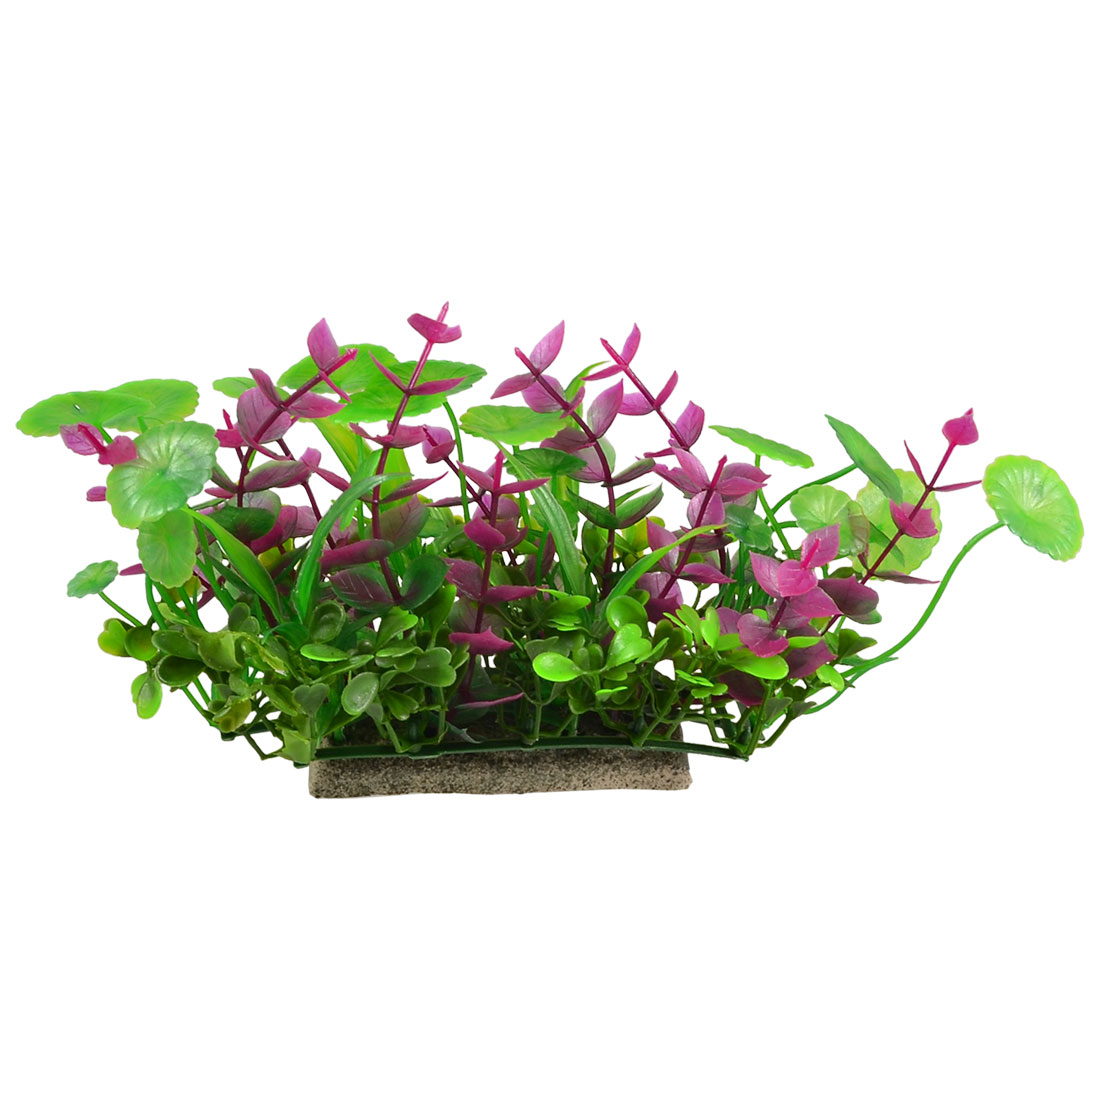 "Manmade Plastic Green Fuchsia Leaves Plant for Aquarium 3.9"" Height"